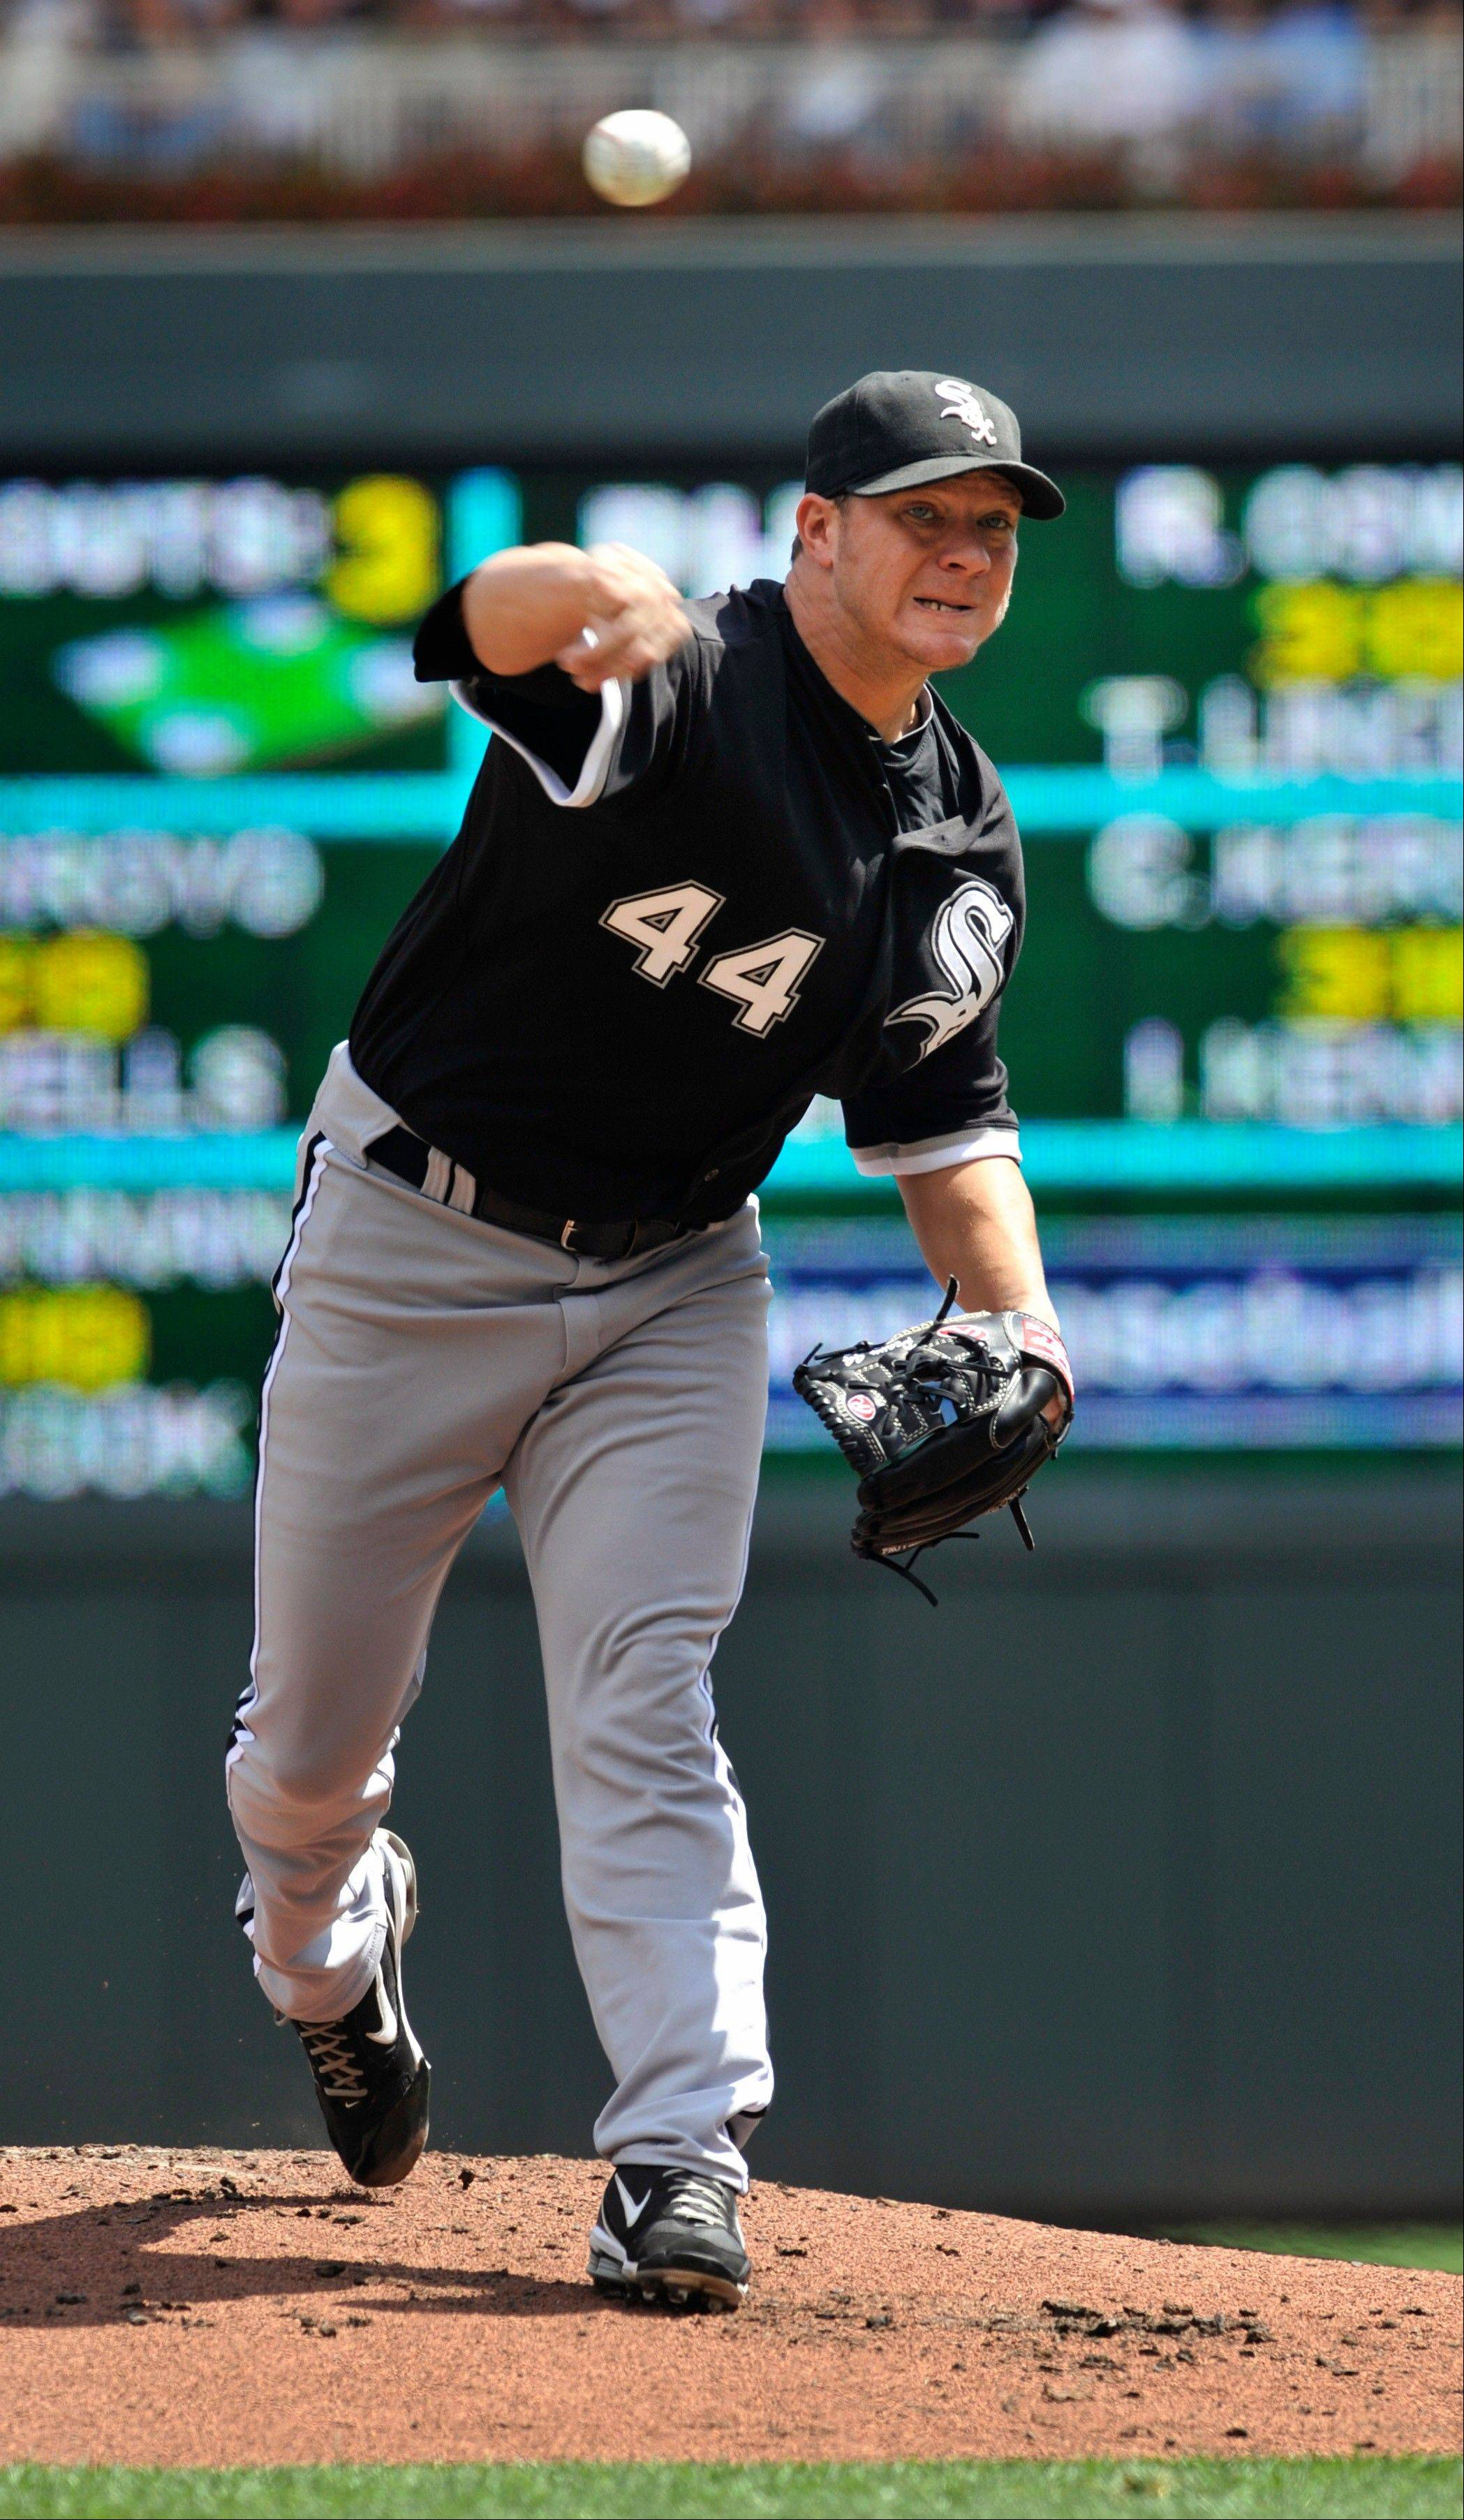 Jake Peavy gave up only three hits, all in the first three innings, on Sunday against Minnesota.